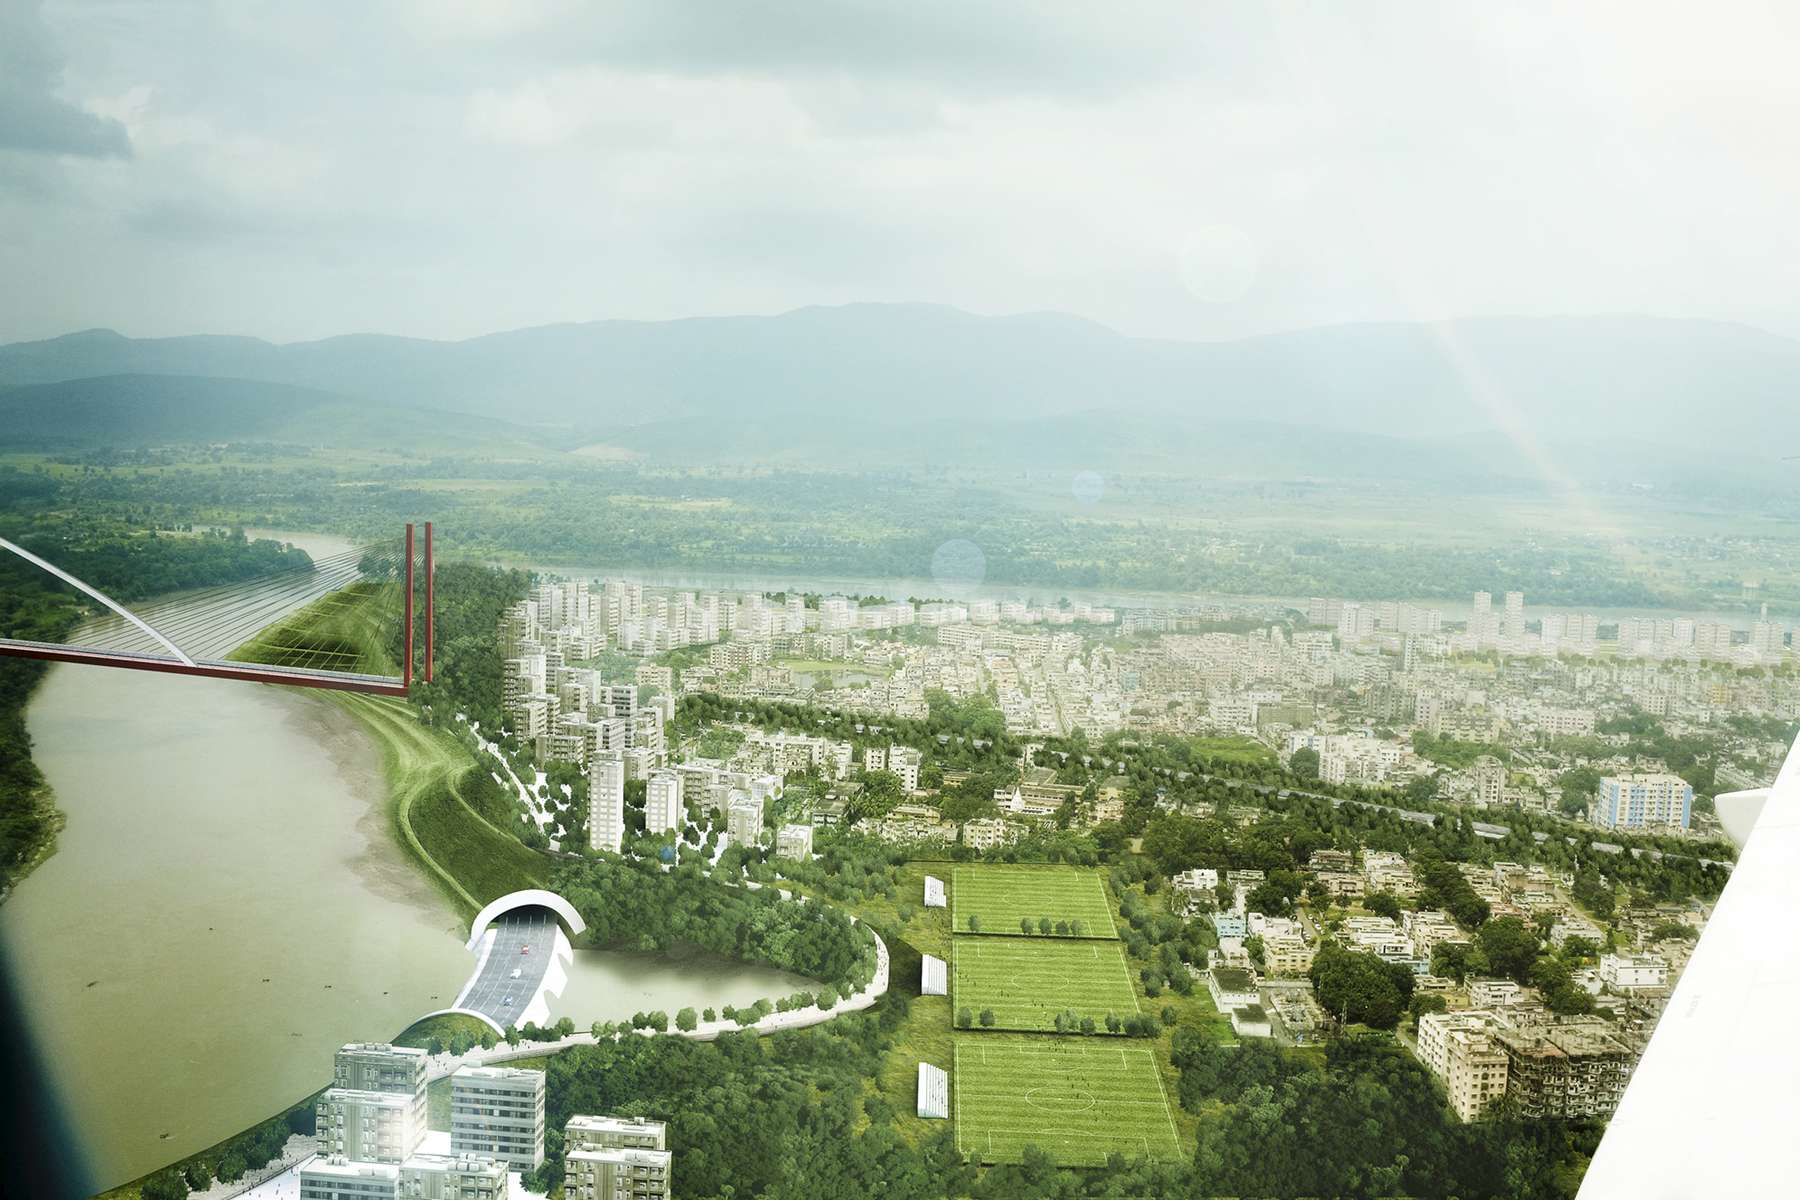 Jamshedpur, Jharkhand, India.Role + Responsibility:Jamshedpur 2057 is a conceptual action-based strategic masterplan for the City of Steel in Jamshedpur, India – the birthplace of the Tata Group industry. The masterplan was executed over a twelve-month period of time with a 47-person team led and directed by Jessica Jamroz. Jamshedpur is home base for Tata Group's two main industrial operations: Tata Steel (5th largest Steel producer in the World) and sister company Tata Motors (owns Jaguar, Land Rover). The City of Jamshedpur in 2014 housed approximately 500,000 people (employees of the company and population that lives in informal settlements surrounding housing). Our population projections, at a minimum, project that the city by 2057 would multiply to an estimated 2 Million plus people. With overcrowding, pollution, quality of life, climate change, transportation, and air and water quality issues already at their doorstep, the Tata family called upon the team to create a functional city operations plan for immediate brick-and-mortar type steps in anticipation for projected population growth and in order to become a sustainable city in the coming century. Urban Design Concepts (Vision Plan), Public Facilities, Landscape & Ecology, Hazard Mitigation, Pollution, Health, Housing & Community, Utility, Land-use, Zoning, Development Controls, Transportation & Infrastructure, Entertainment, Recreation and Attractions, and Marketplace & Economic Diversification issues were all addressed in intense detail, from a global and regional understanding down to the intricacies of infrastructure at a neighborhood and housing scale.Owner: Tata GroupArea: 64 Sq Km (roughly equivalent to 24 Sq Miles)Total Cost: UndisclosedChief Master Planner, Architect and Author: Jessica Jamroz (for FSA)Prime Architect and Master Planning Firm: Frederic Schwartz Architects (New York, NY, USA)Master Planning Engineer & Sustainbility Expert: ARUP Engineering (New York, NY, USA)Landscape & Ecology Arc